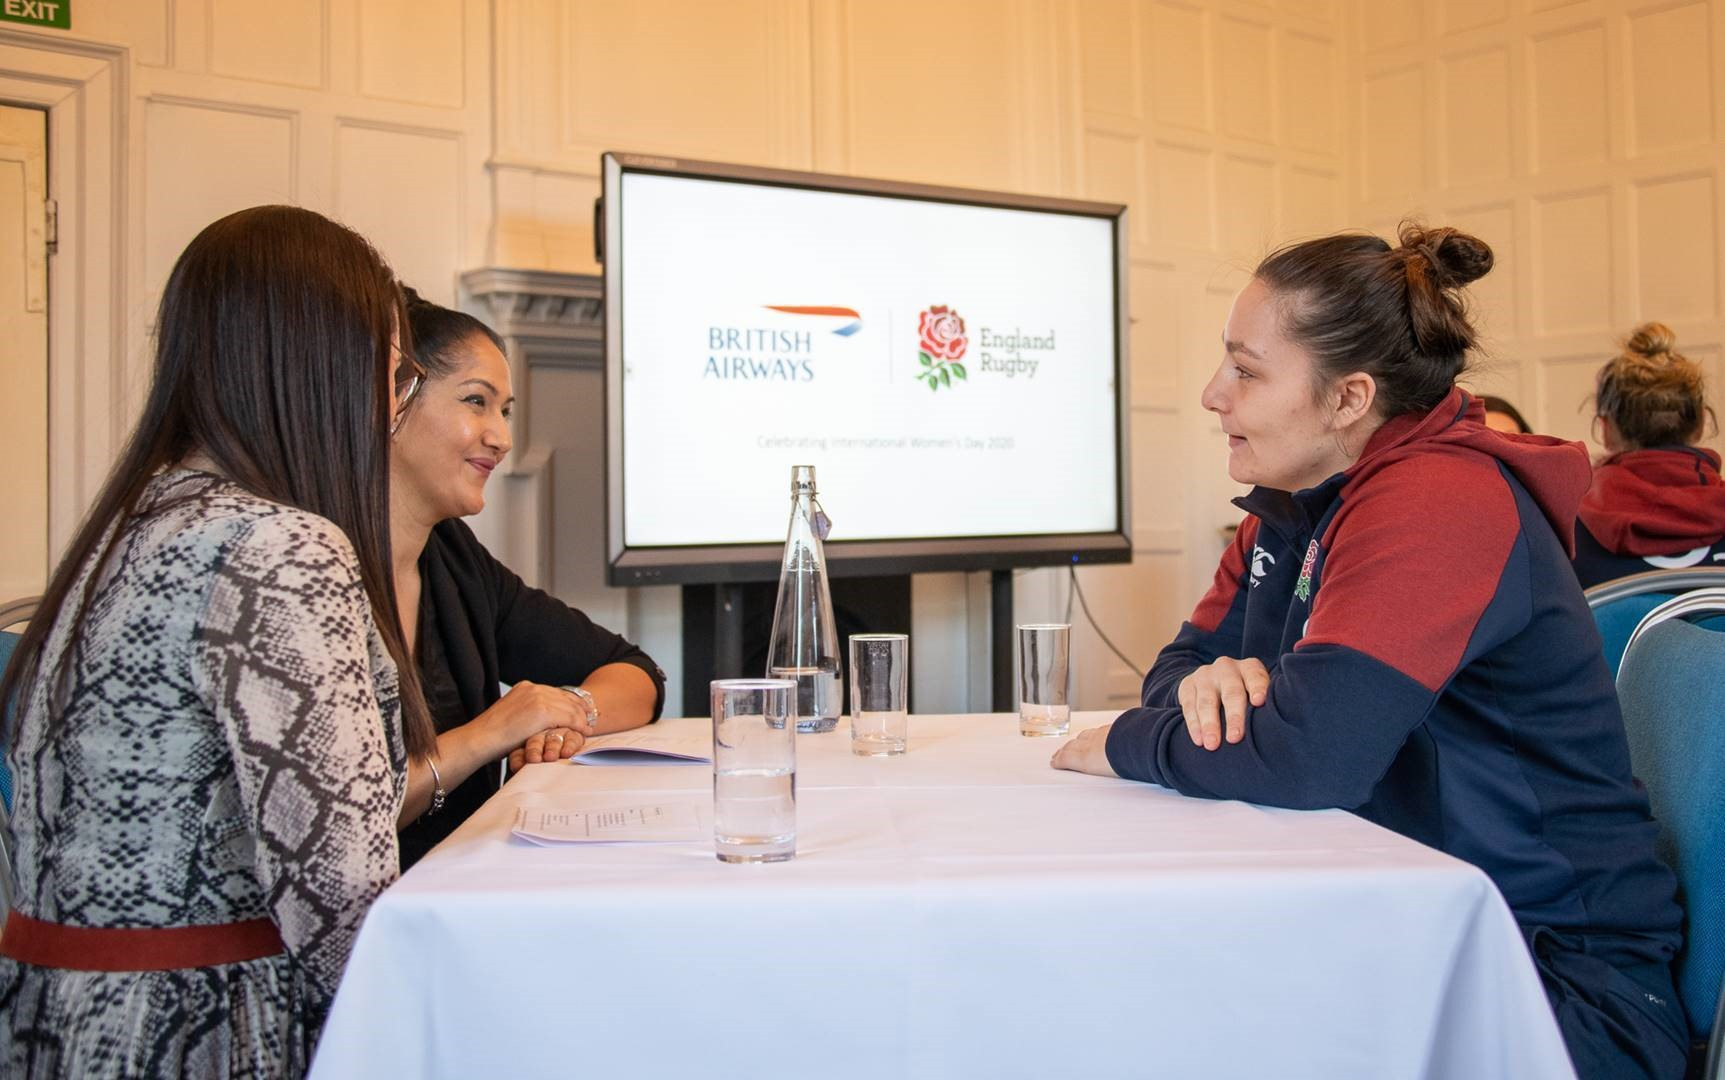 England Rugby celebrate International Women's Day with British Airways